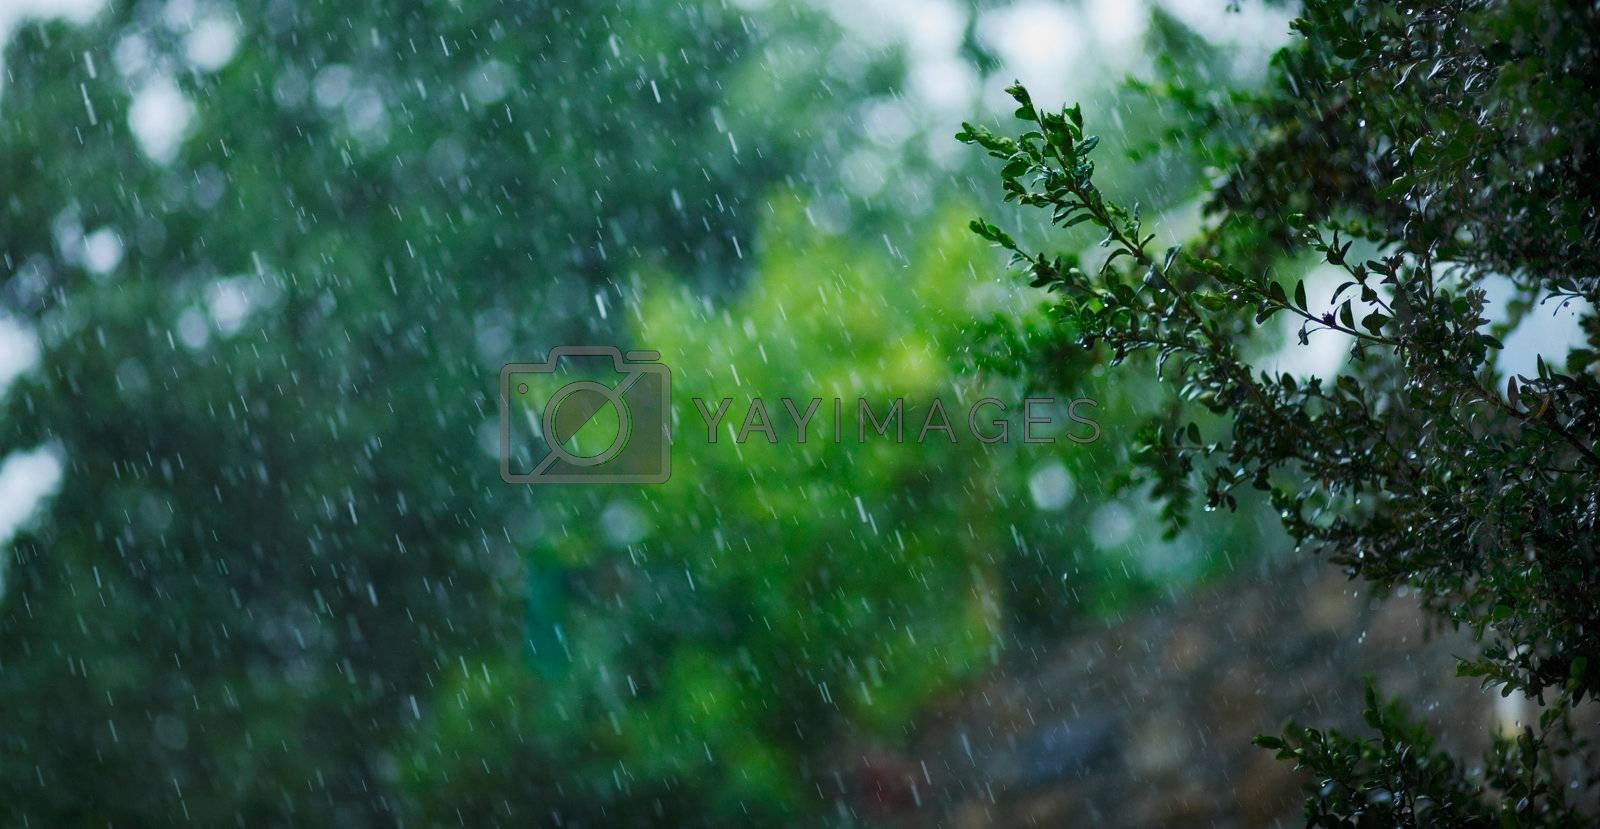 Heavy rain with a background of garden trees.